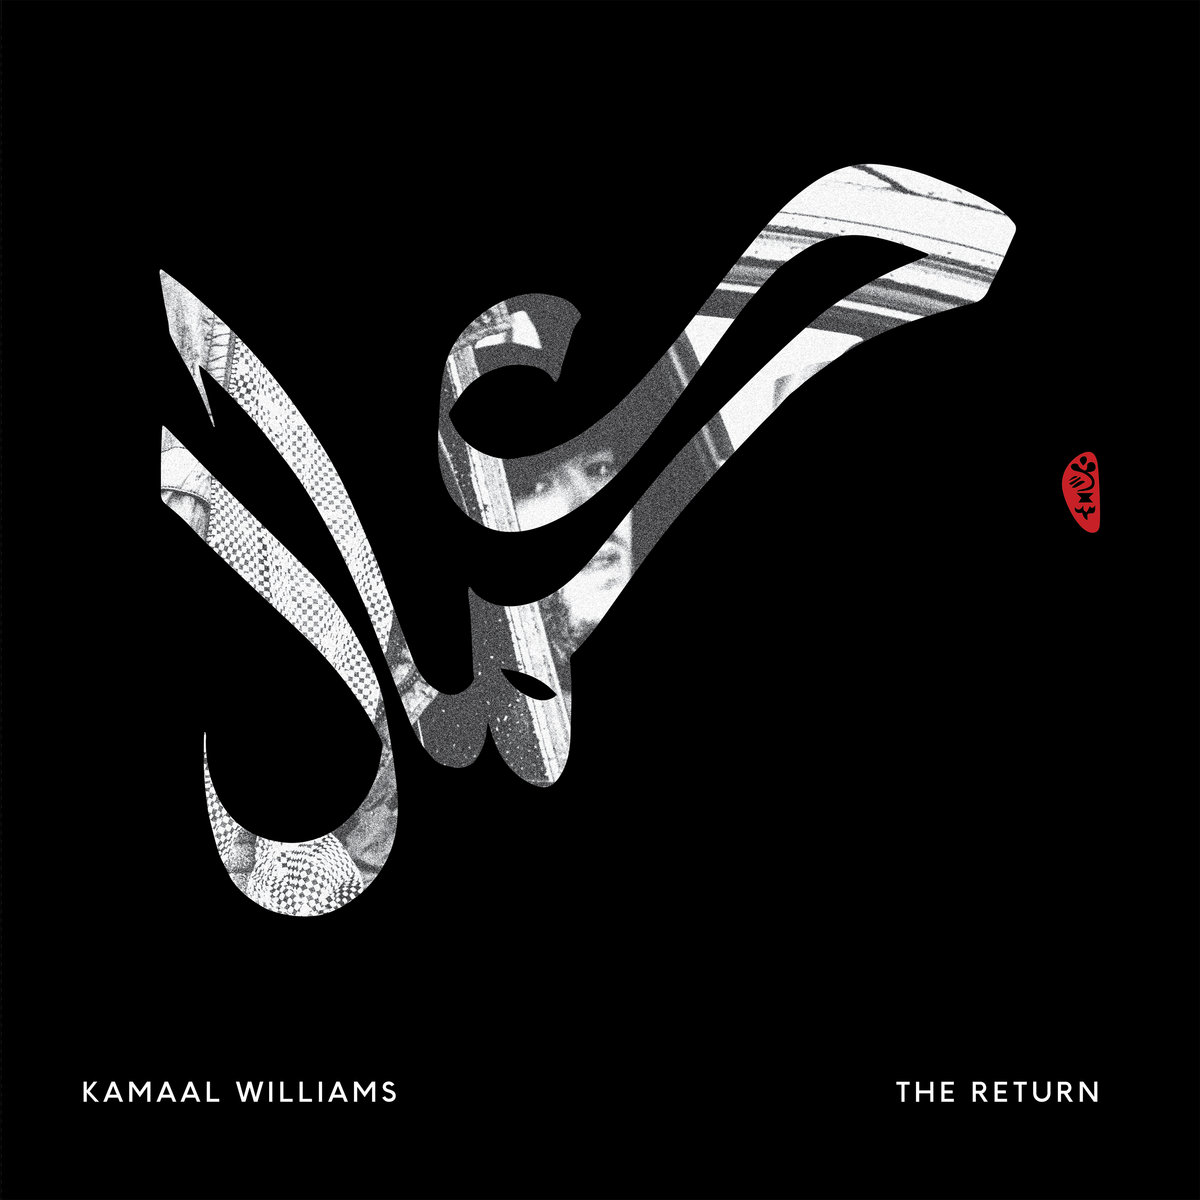 Kamaal Williams new album The Return